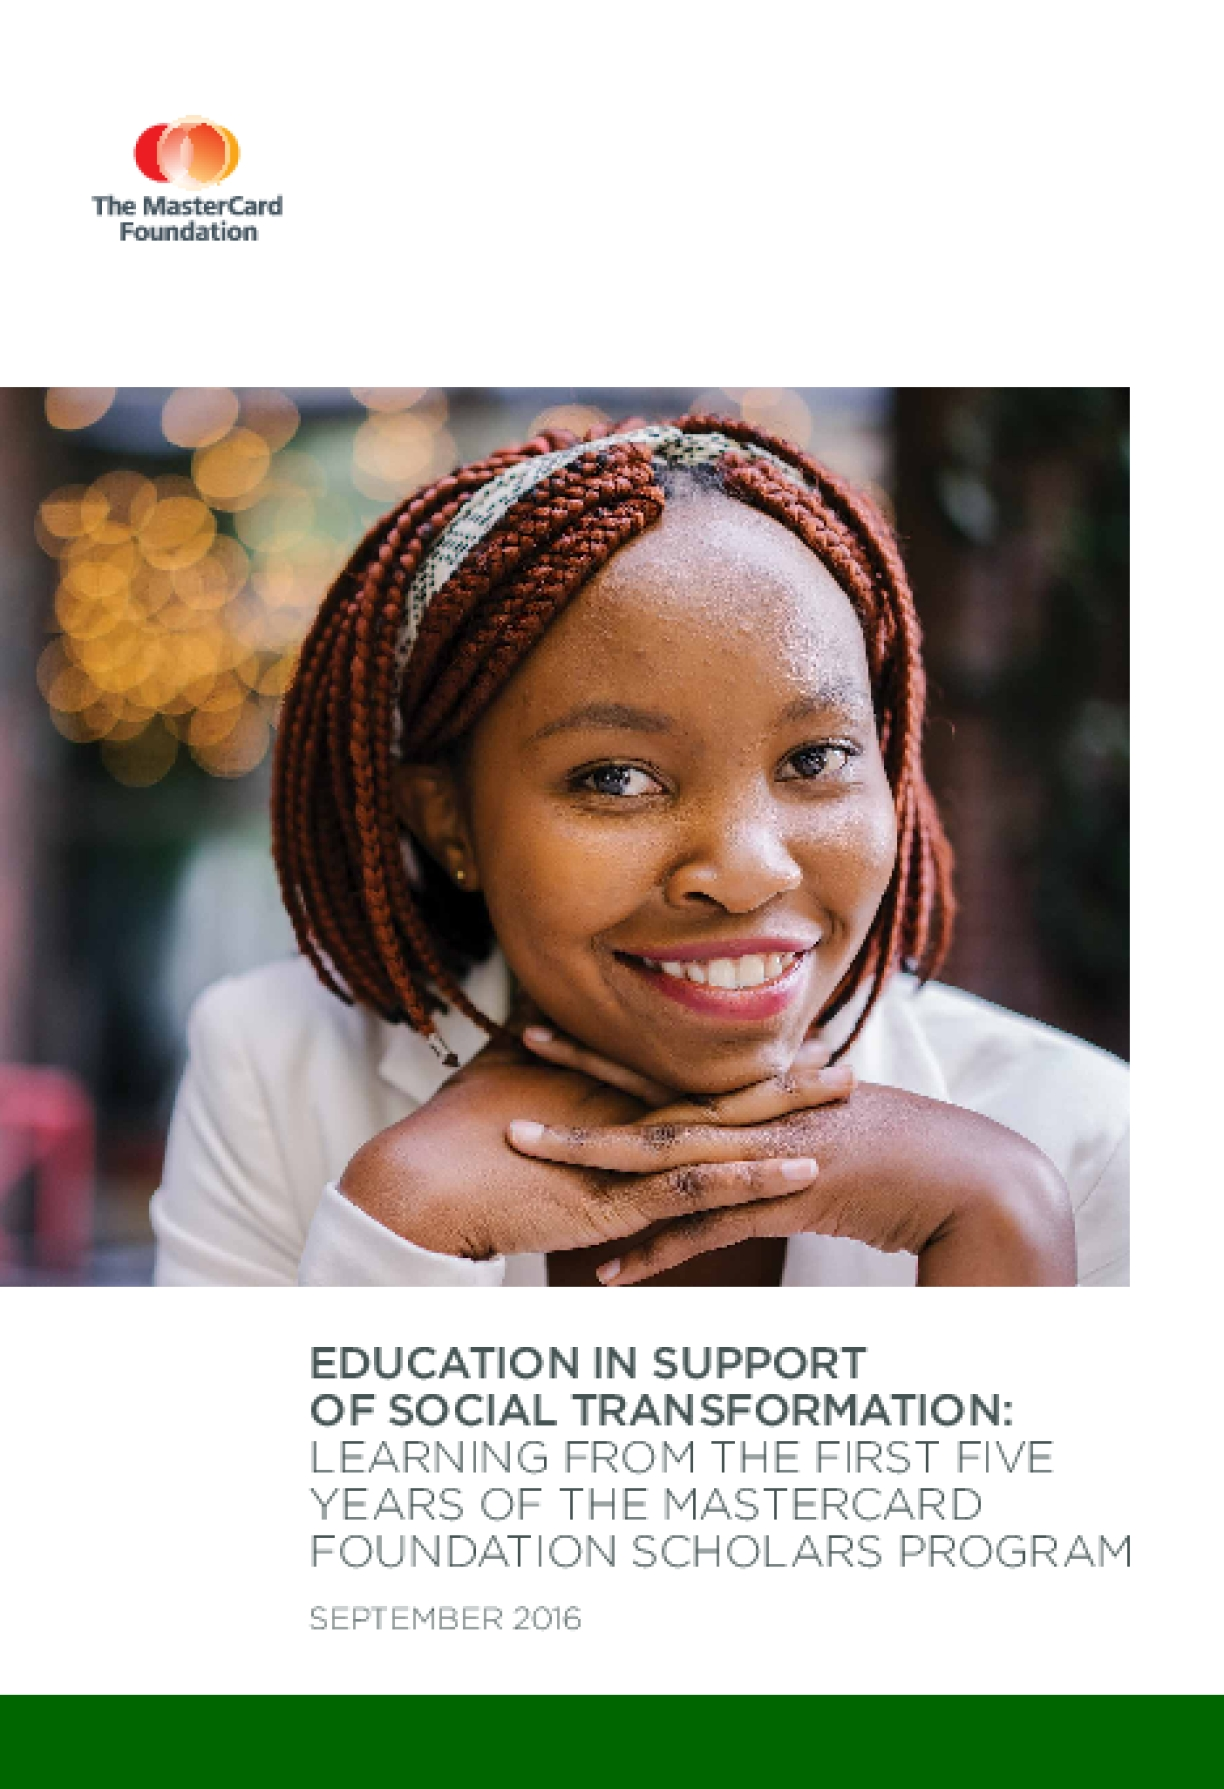 Education in Support of Social Transformation